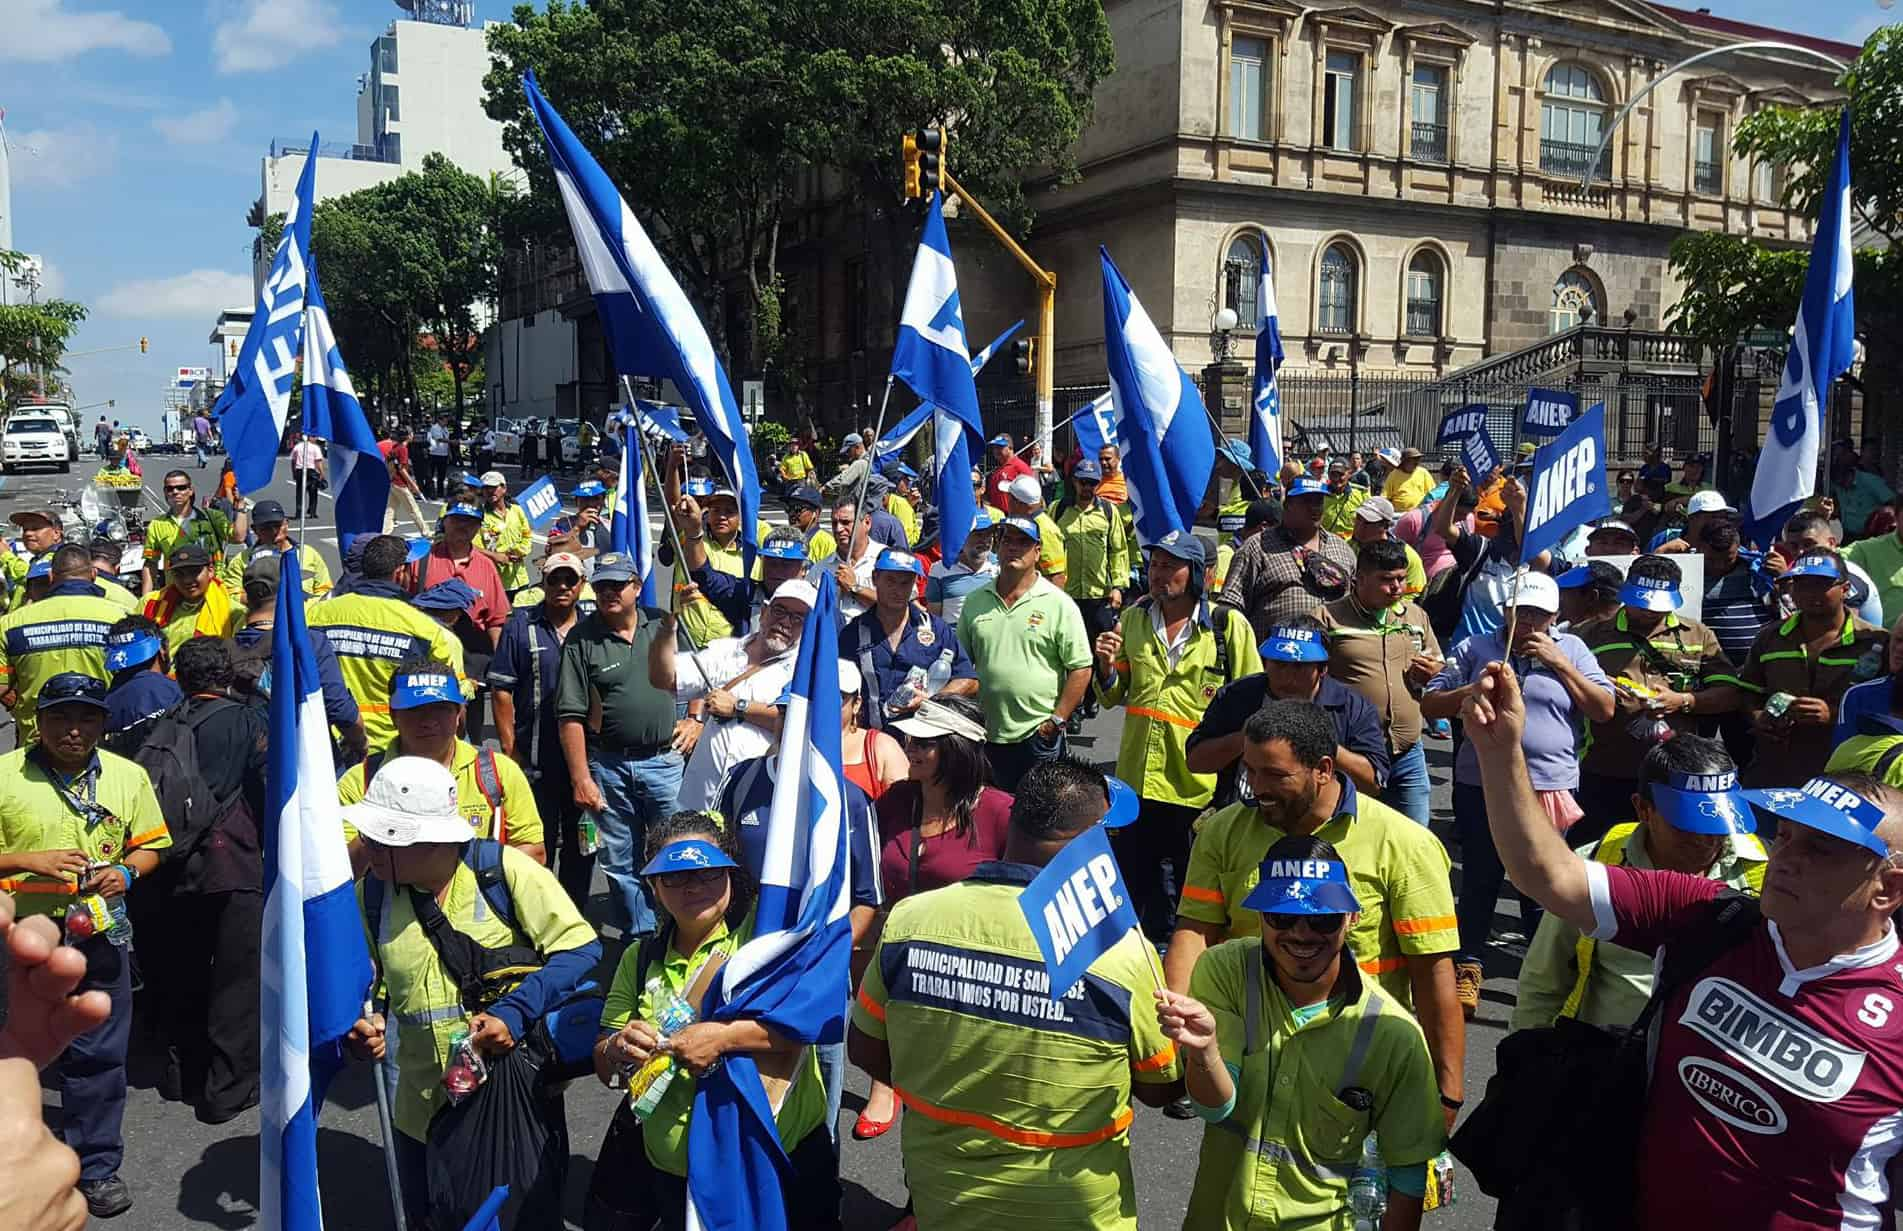 Public workers' unions demonstration in San José. May 22, 2017.